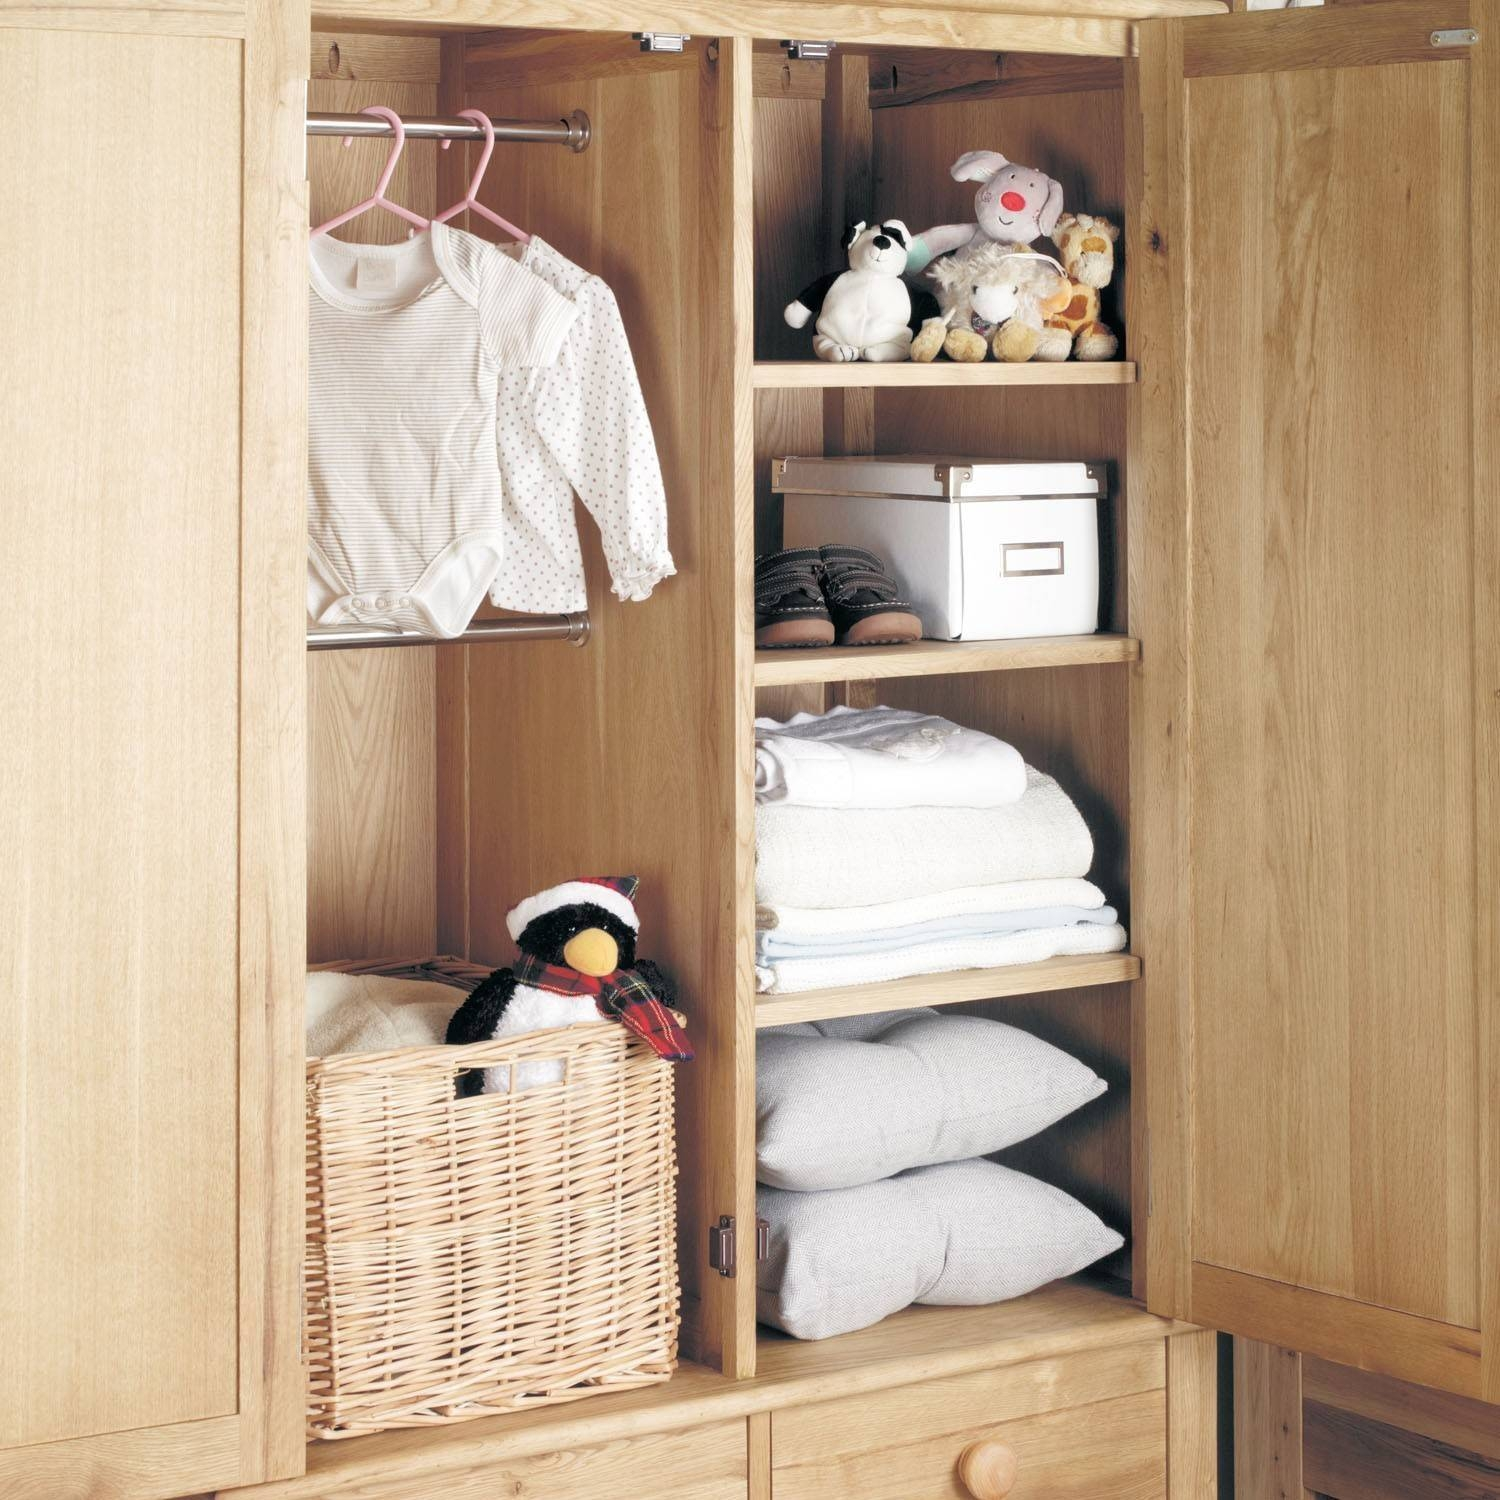 30 Best Childrens Wardrobes With Drawers And Shelves with regard to Wardrobes With Drawers and Shelves (Image 1 of 30)